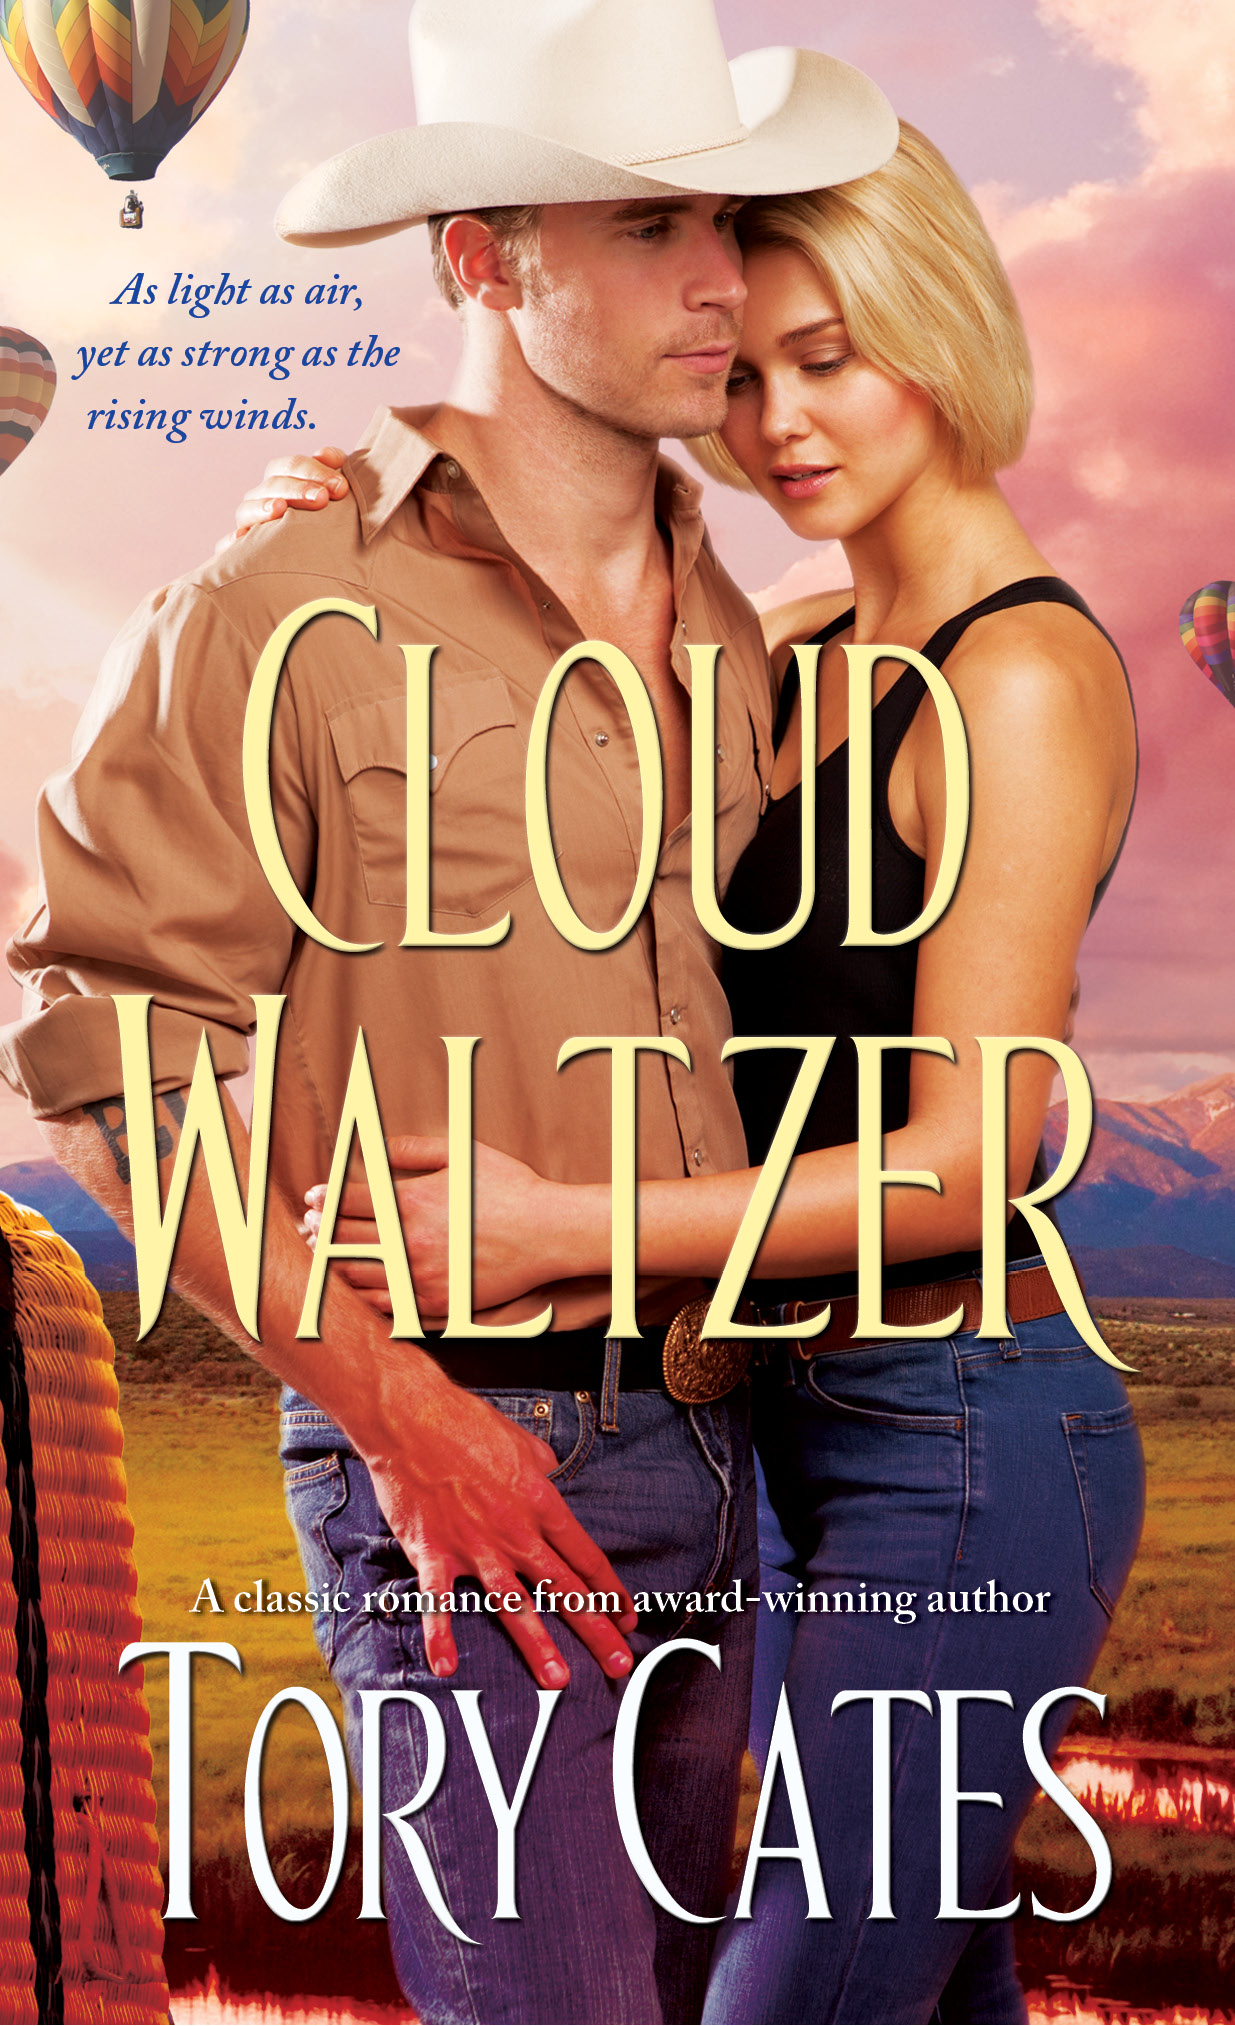 Cloud-waltzer-9781476732565_hr